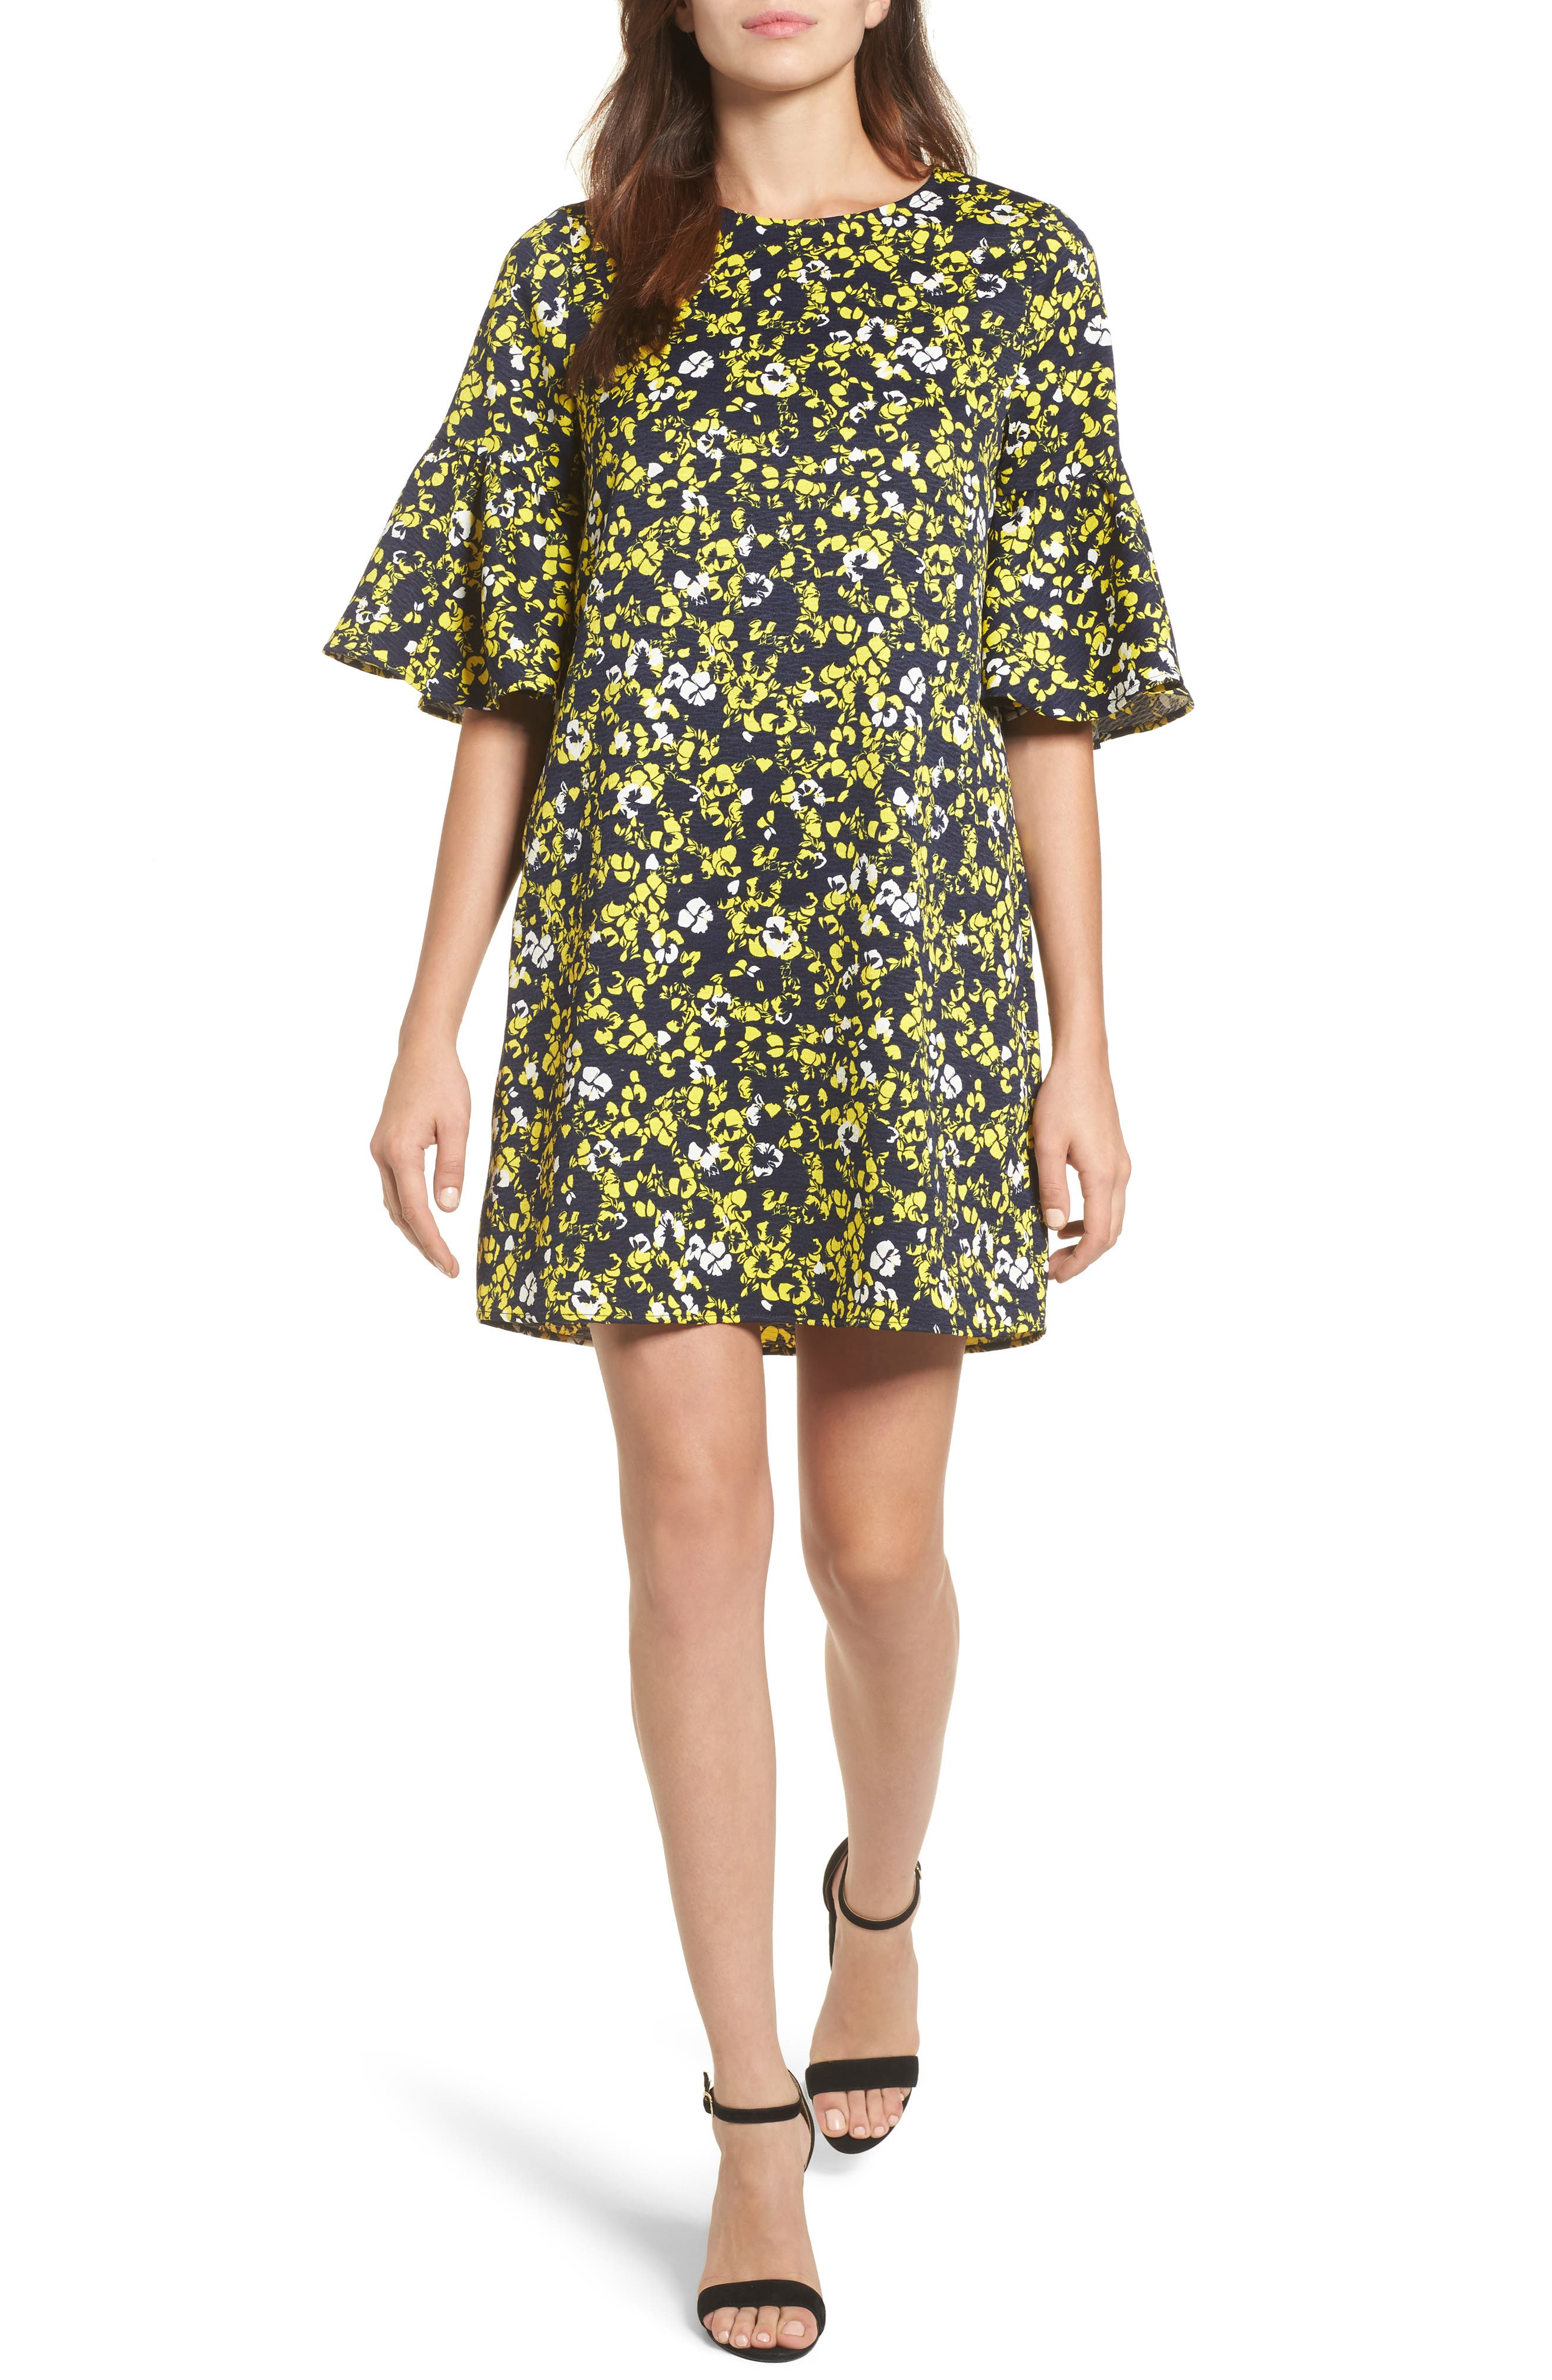 Ruffle Sleeve Shift Dress,                         Main,                         color, Navy- Yellow Floral